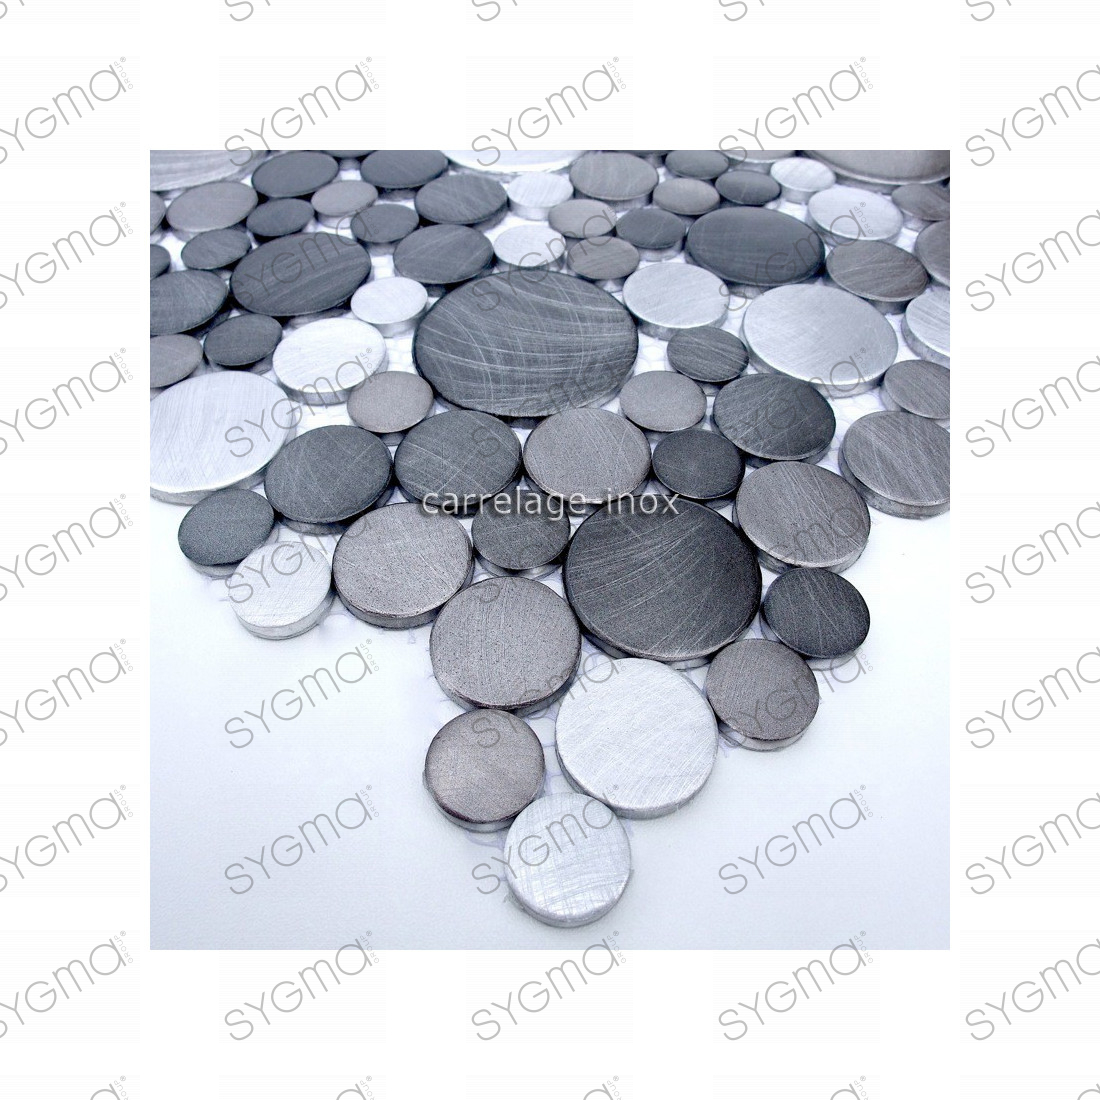 carrelage aluminium mosaique 1 plaque loopgris. Black Bedroom Furniture Sets. Home Design Ideas